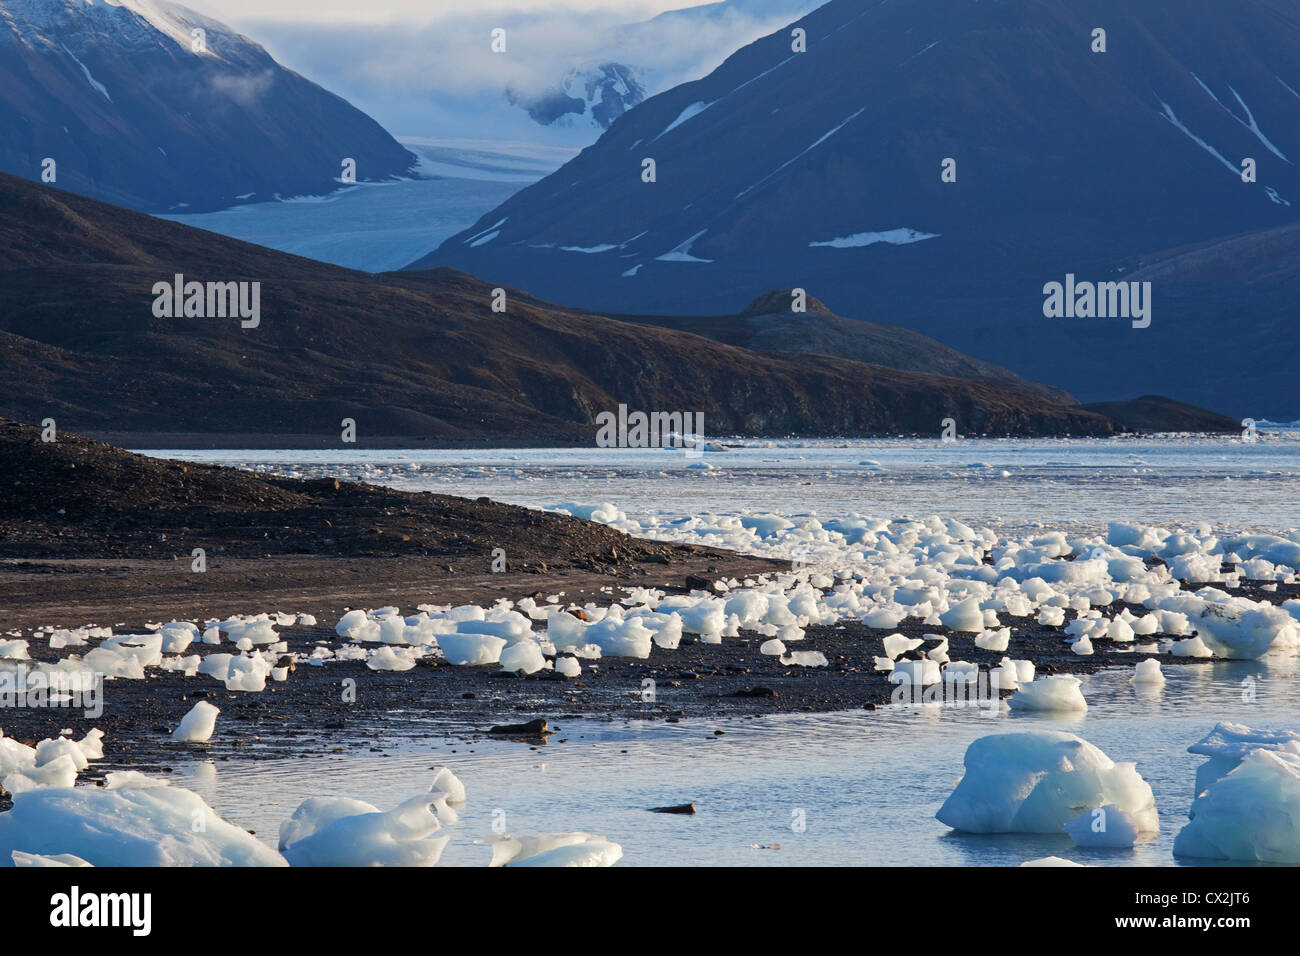 Chunks of ice from glacier washed ashore on beach at Svalbard, Spitsbergen, Norway - Stock Image